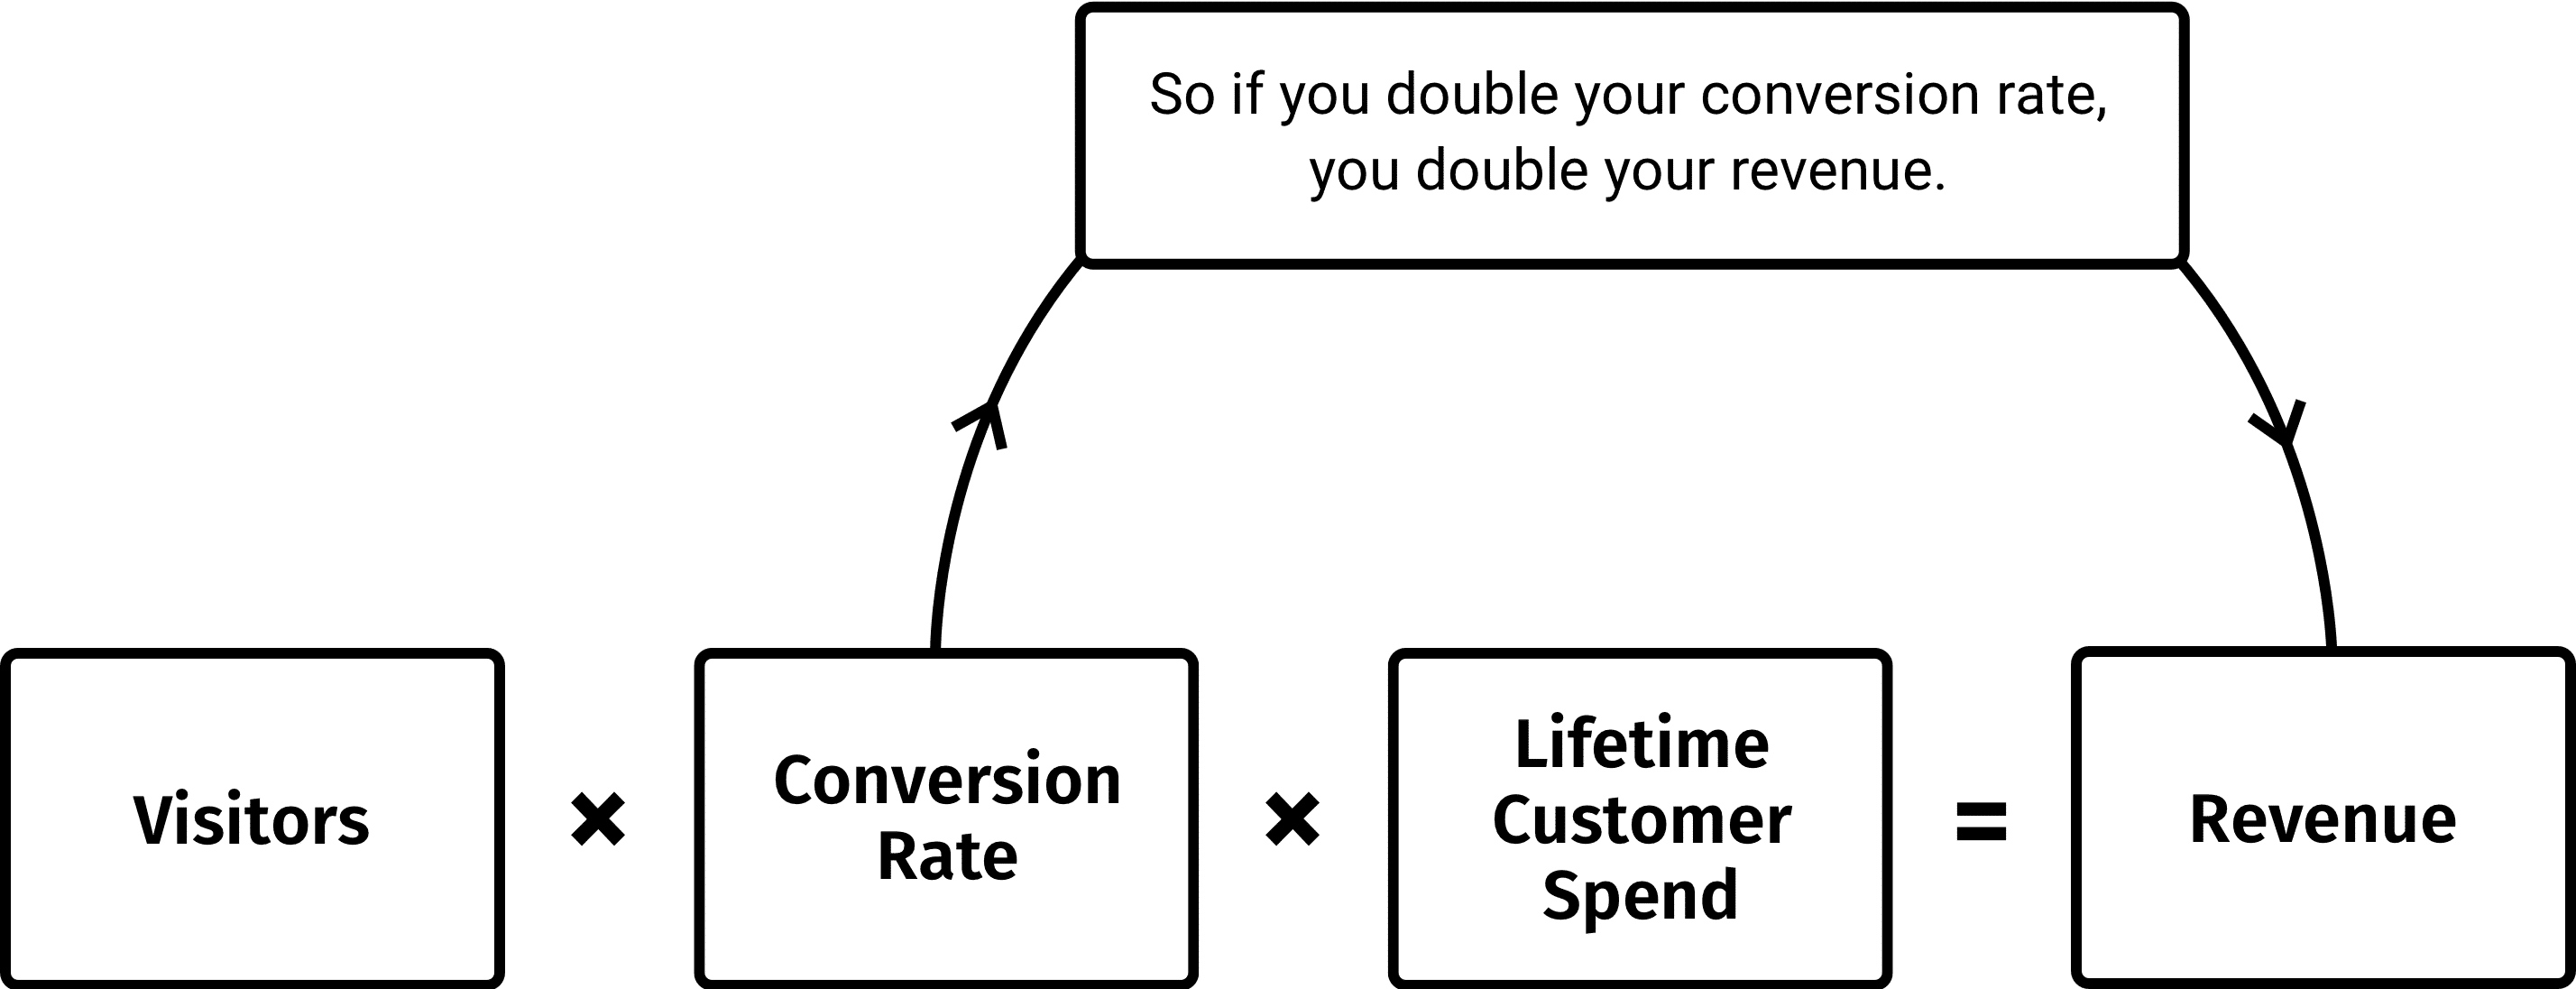 Diagram showing how when you double the conversion rate of a website it will double the revenue.